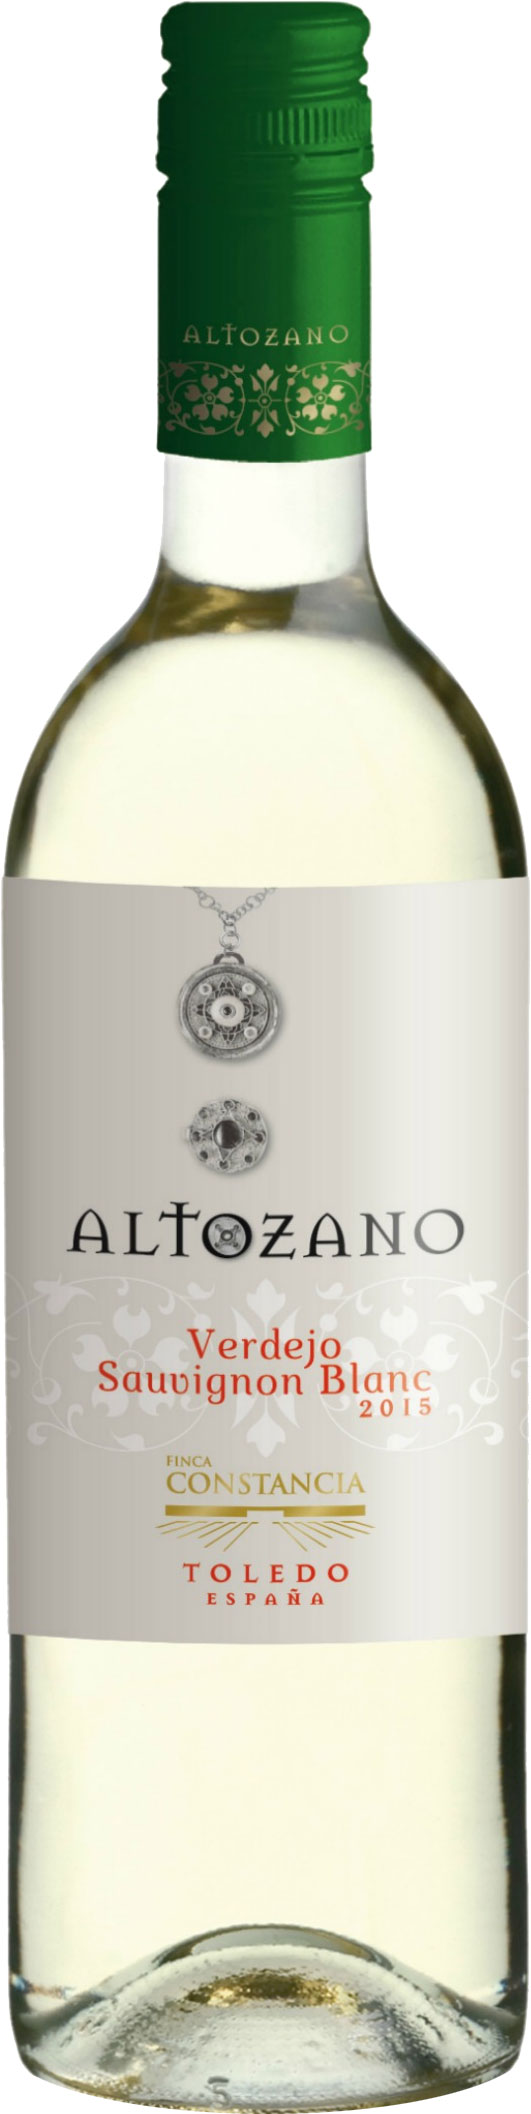 Altozano - Verdejo Sauvignon Blanc 2014 75cl Bottle